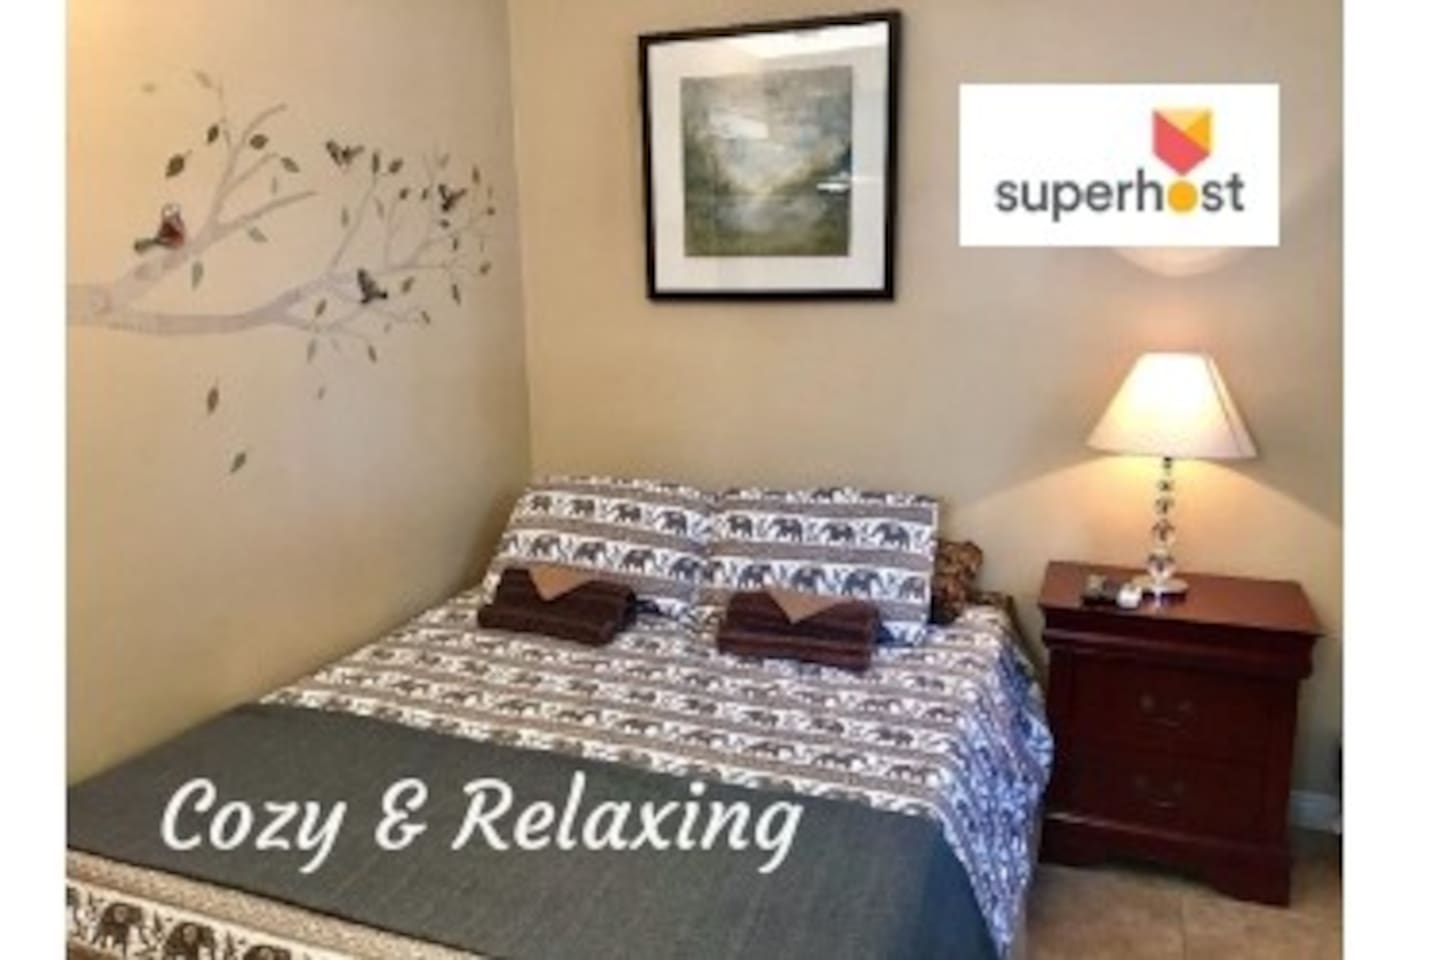 Welcome to your cozy and relaxing Queen size bed with foam mattress topper for extra comfort.